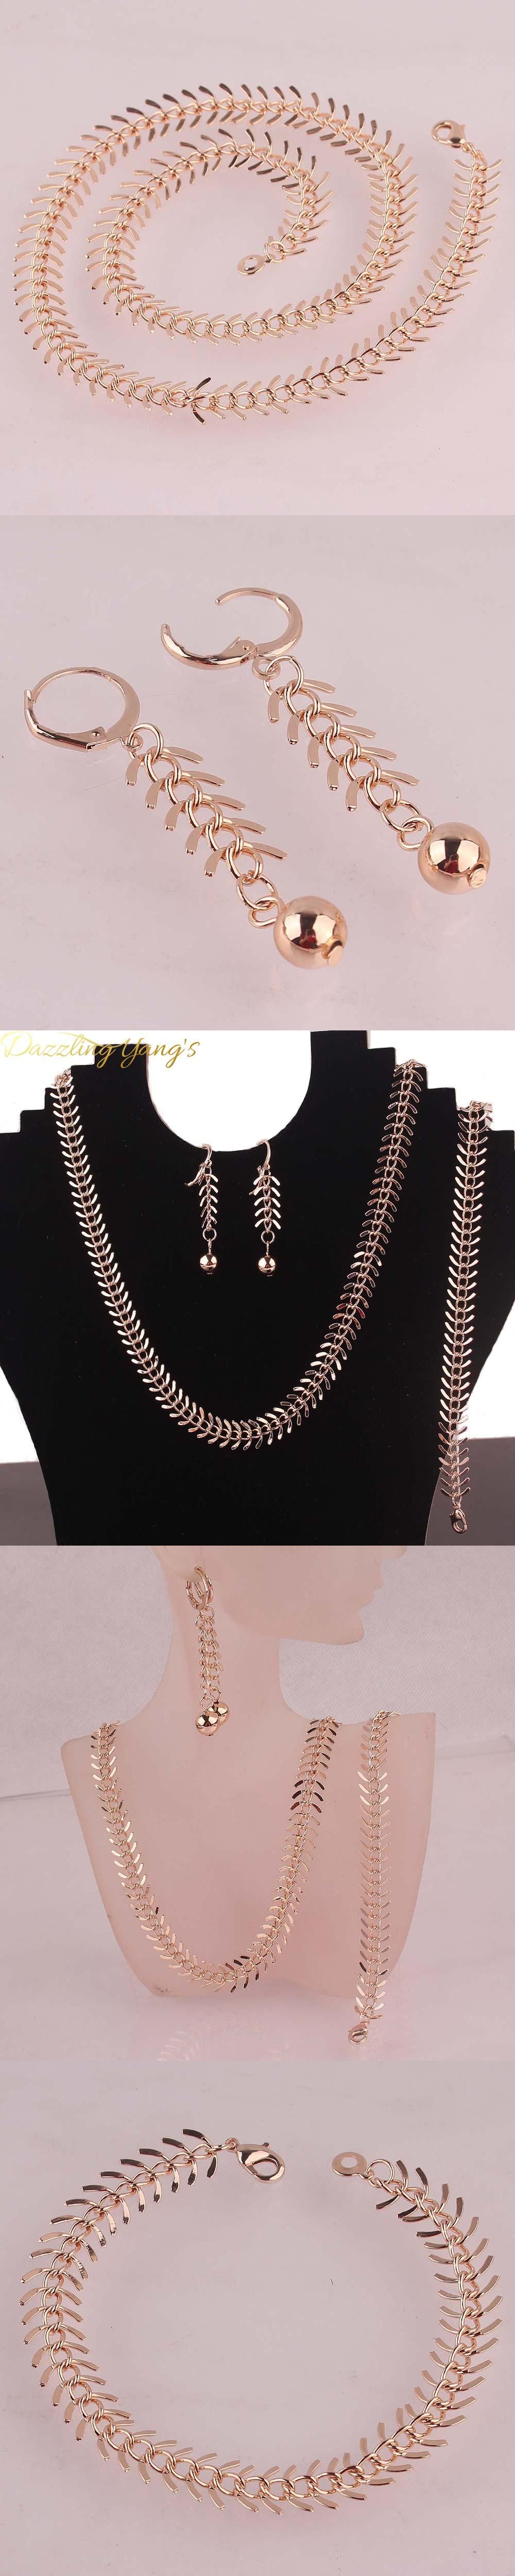 DAZZLING YANGS Hot Sell Women Trendy Jewelry Sets Rose Gold Plated